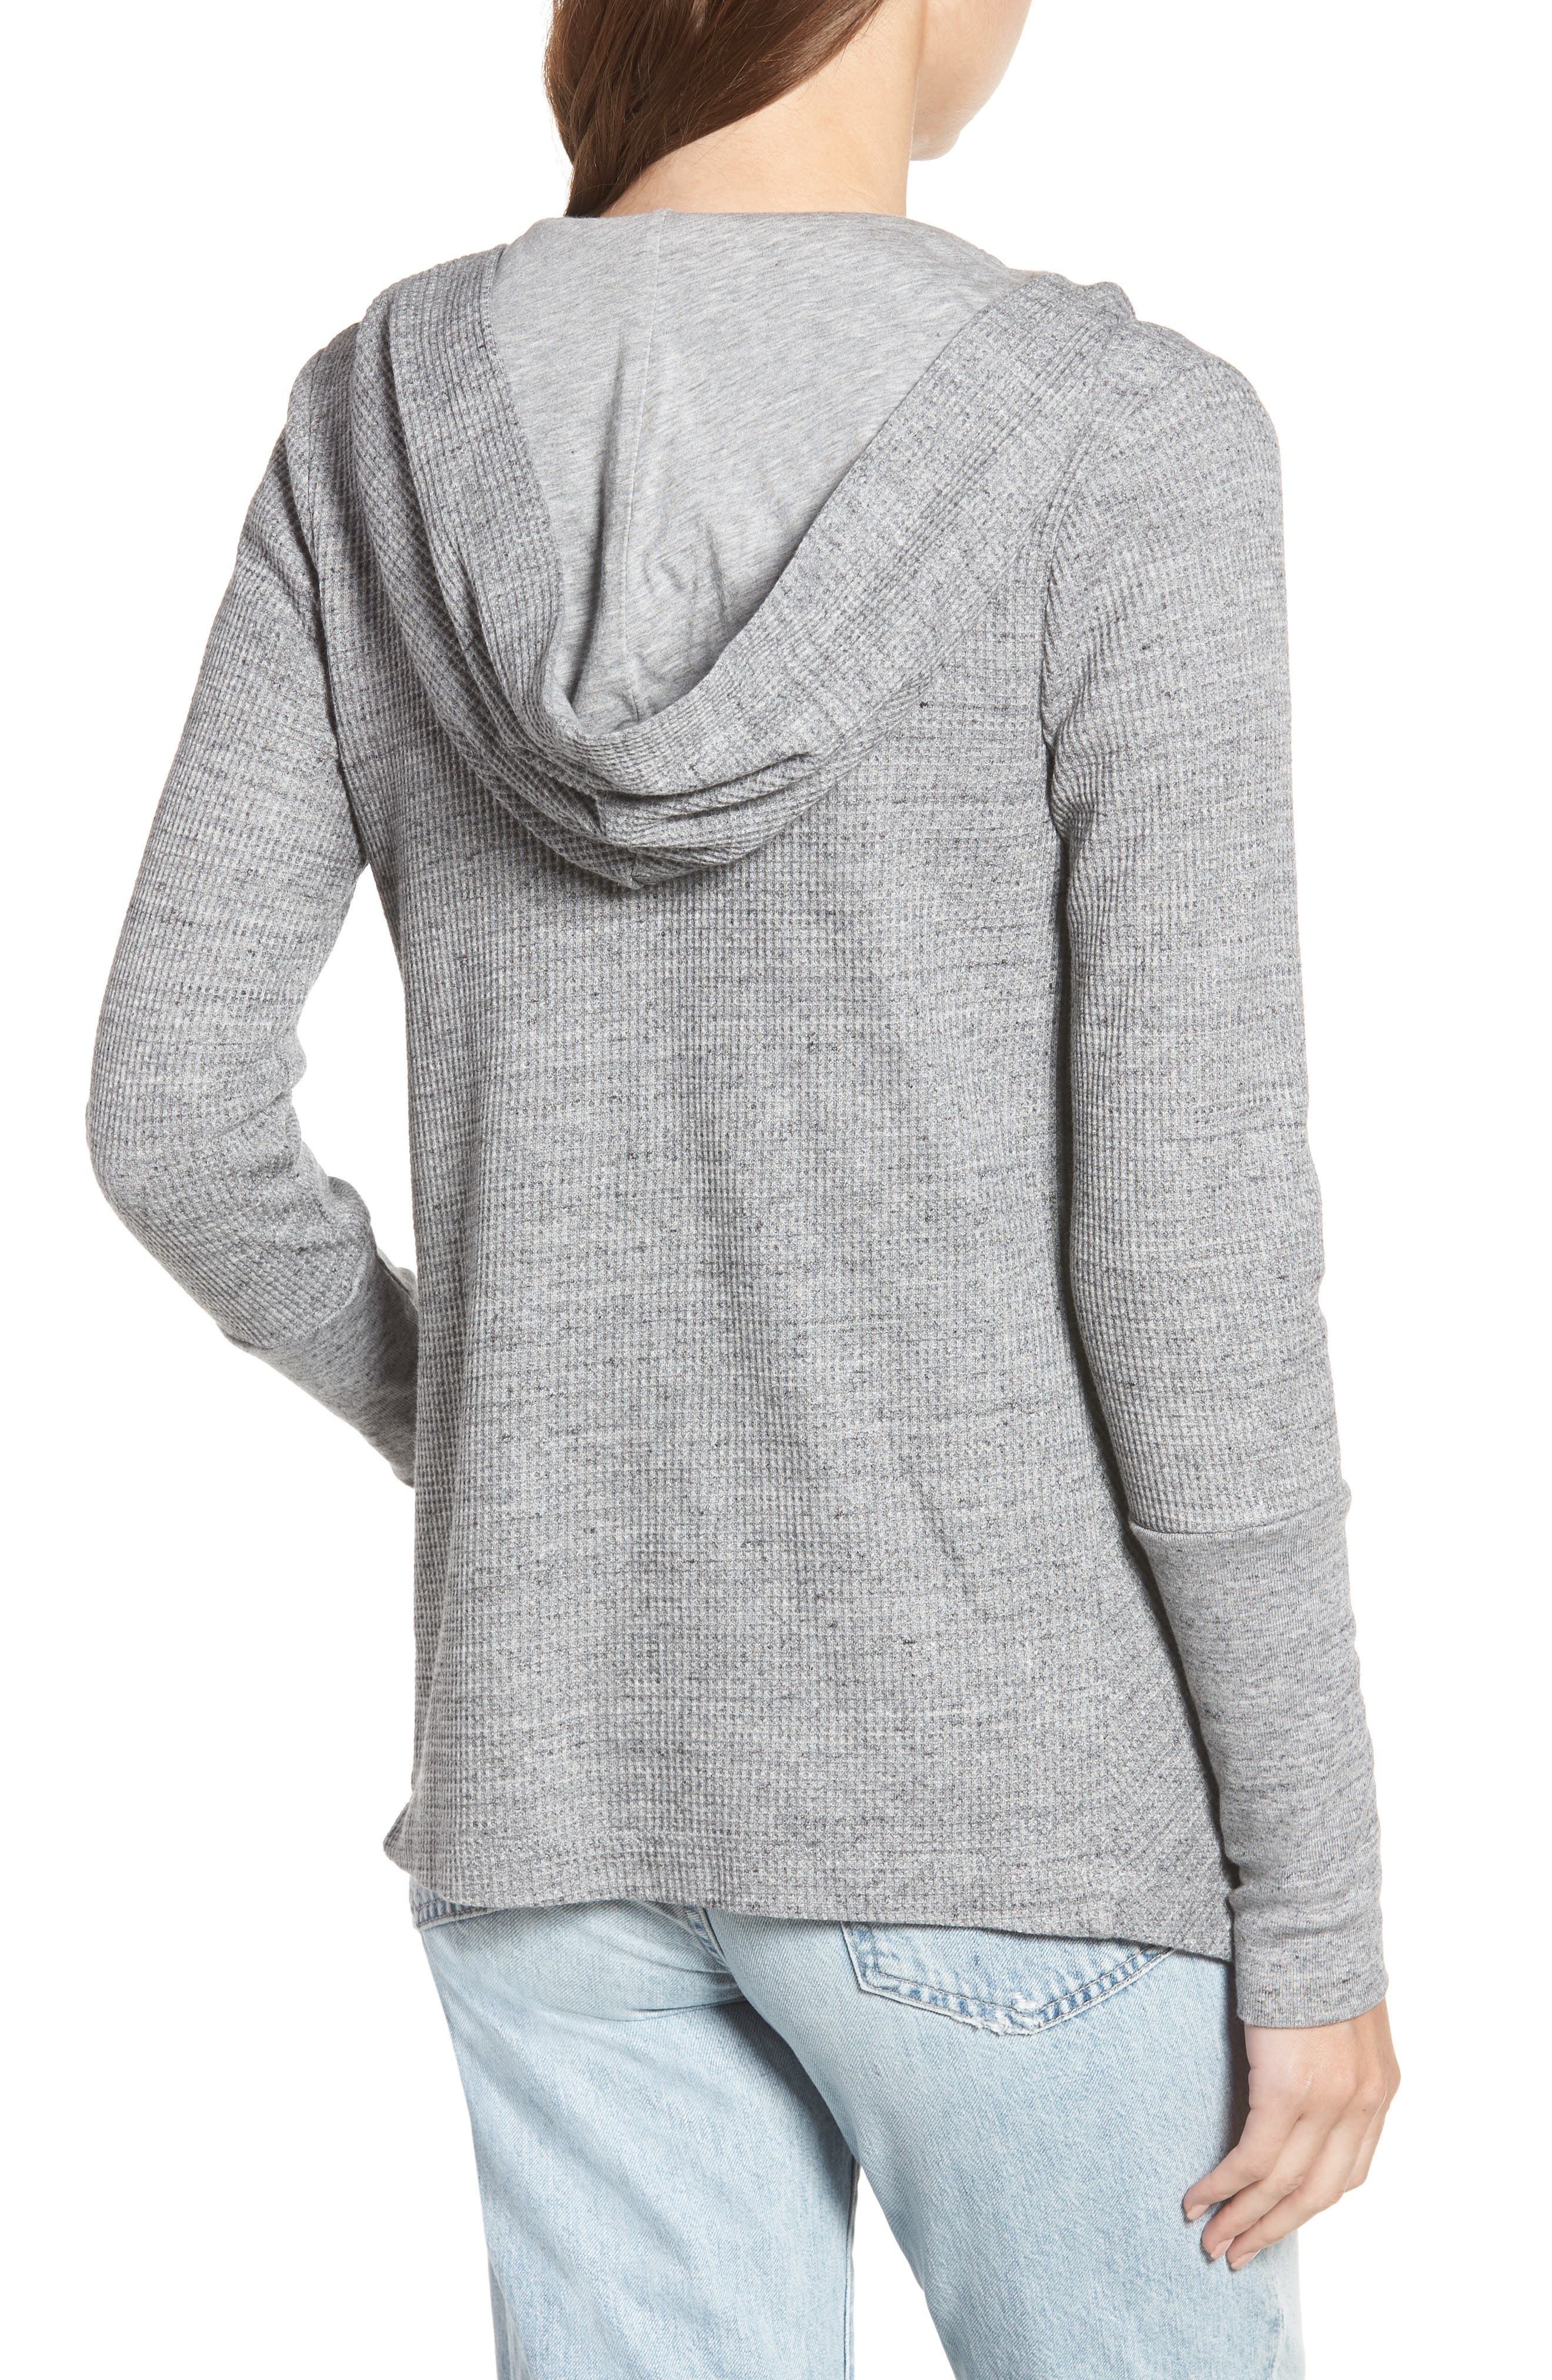 Thermal Hooded Cardigan,                             Alternate thumbnail 2, color,                             GRAVEL HEATHER GREY